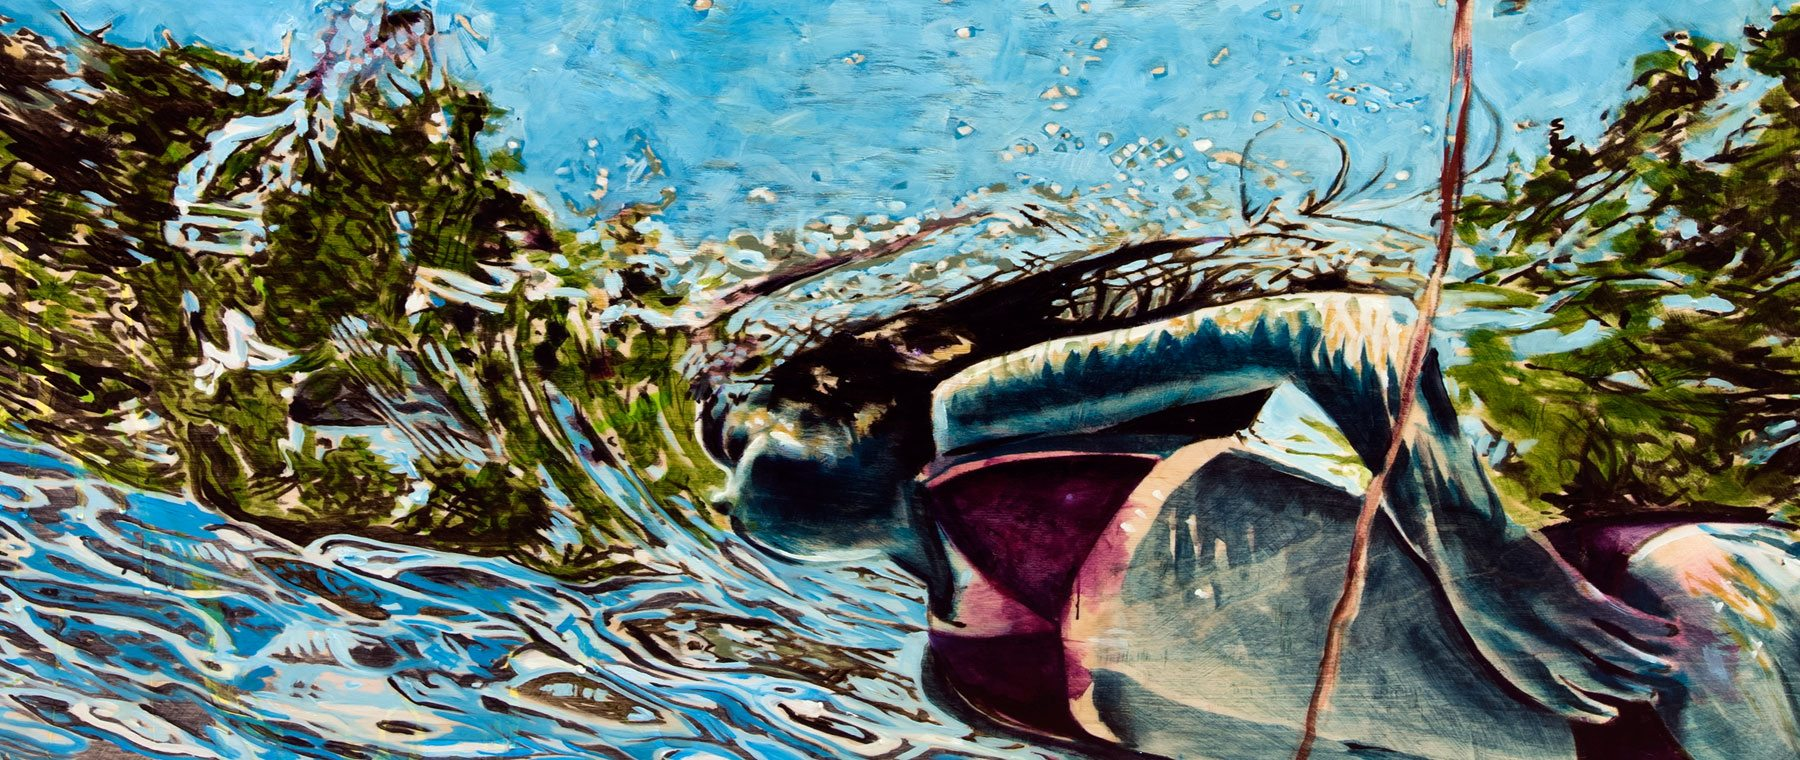 Sarah Hatton's work explores lake in Canadian psyche